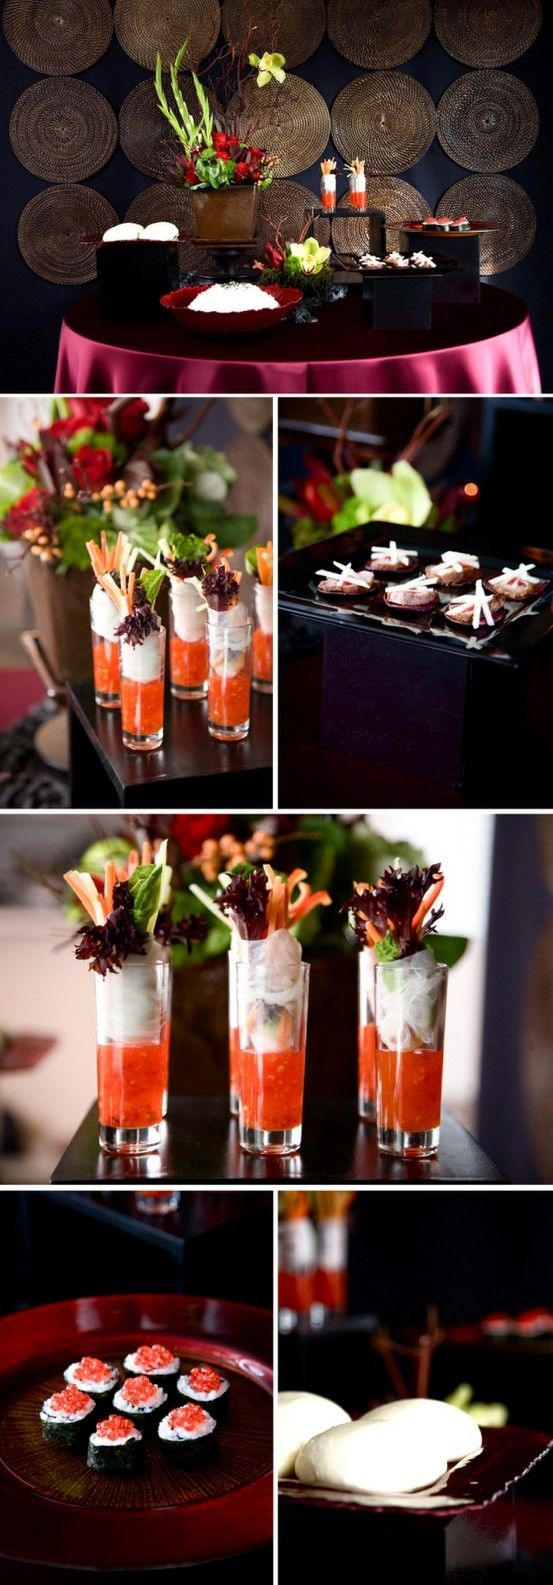 Party food -  very exciting looking cocktail dishes - You want to lose weight for good - check out this here at http://belfit.com